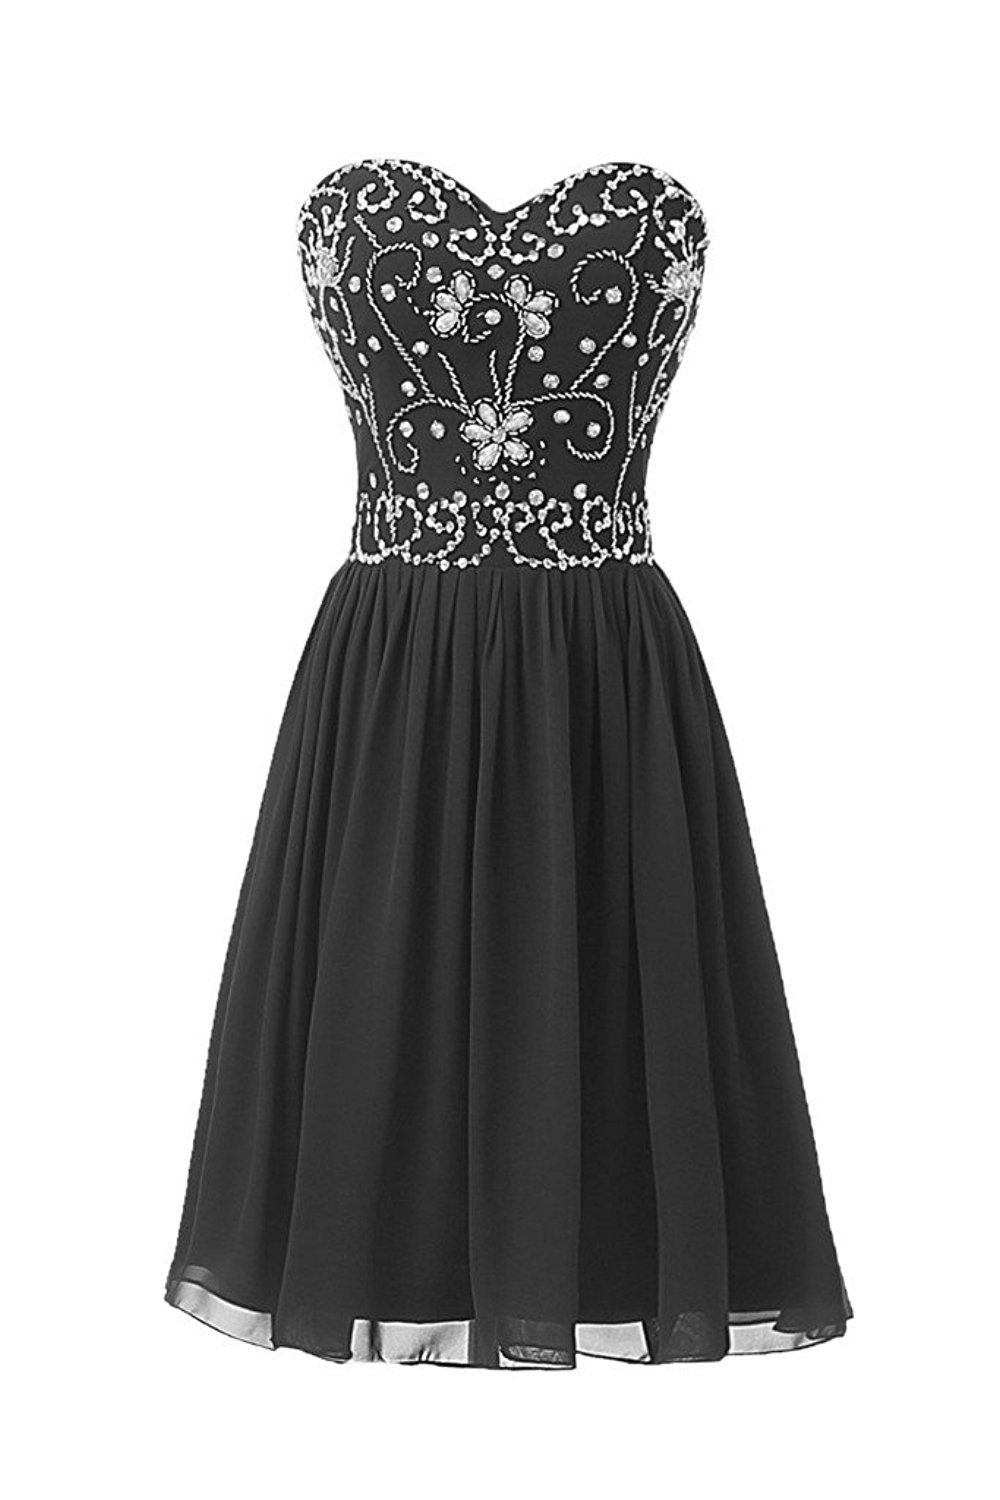 Ellames short beading prom homecoming party dresses for juniors